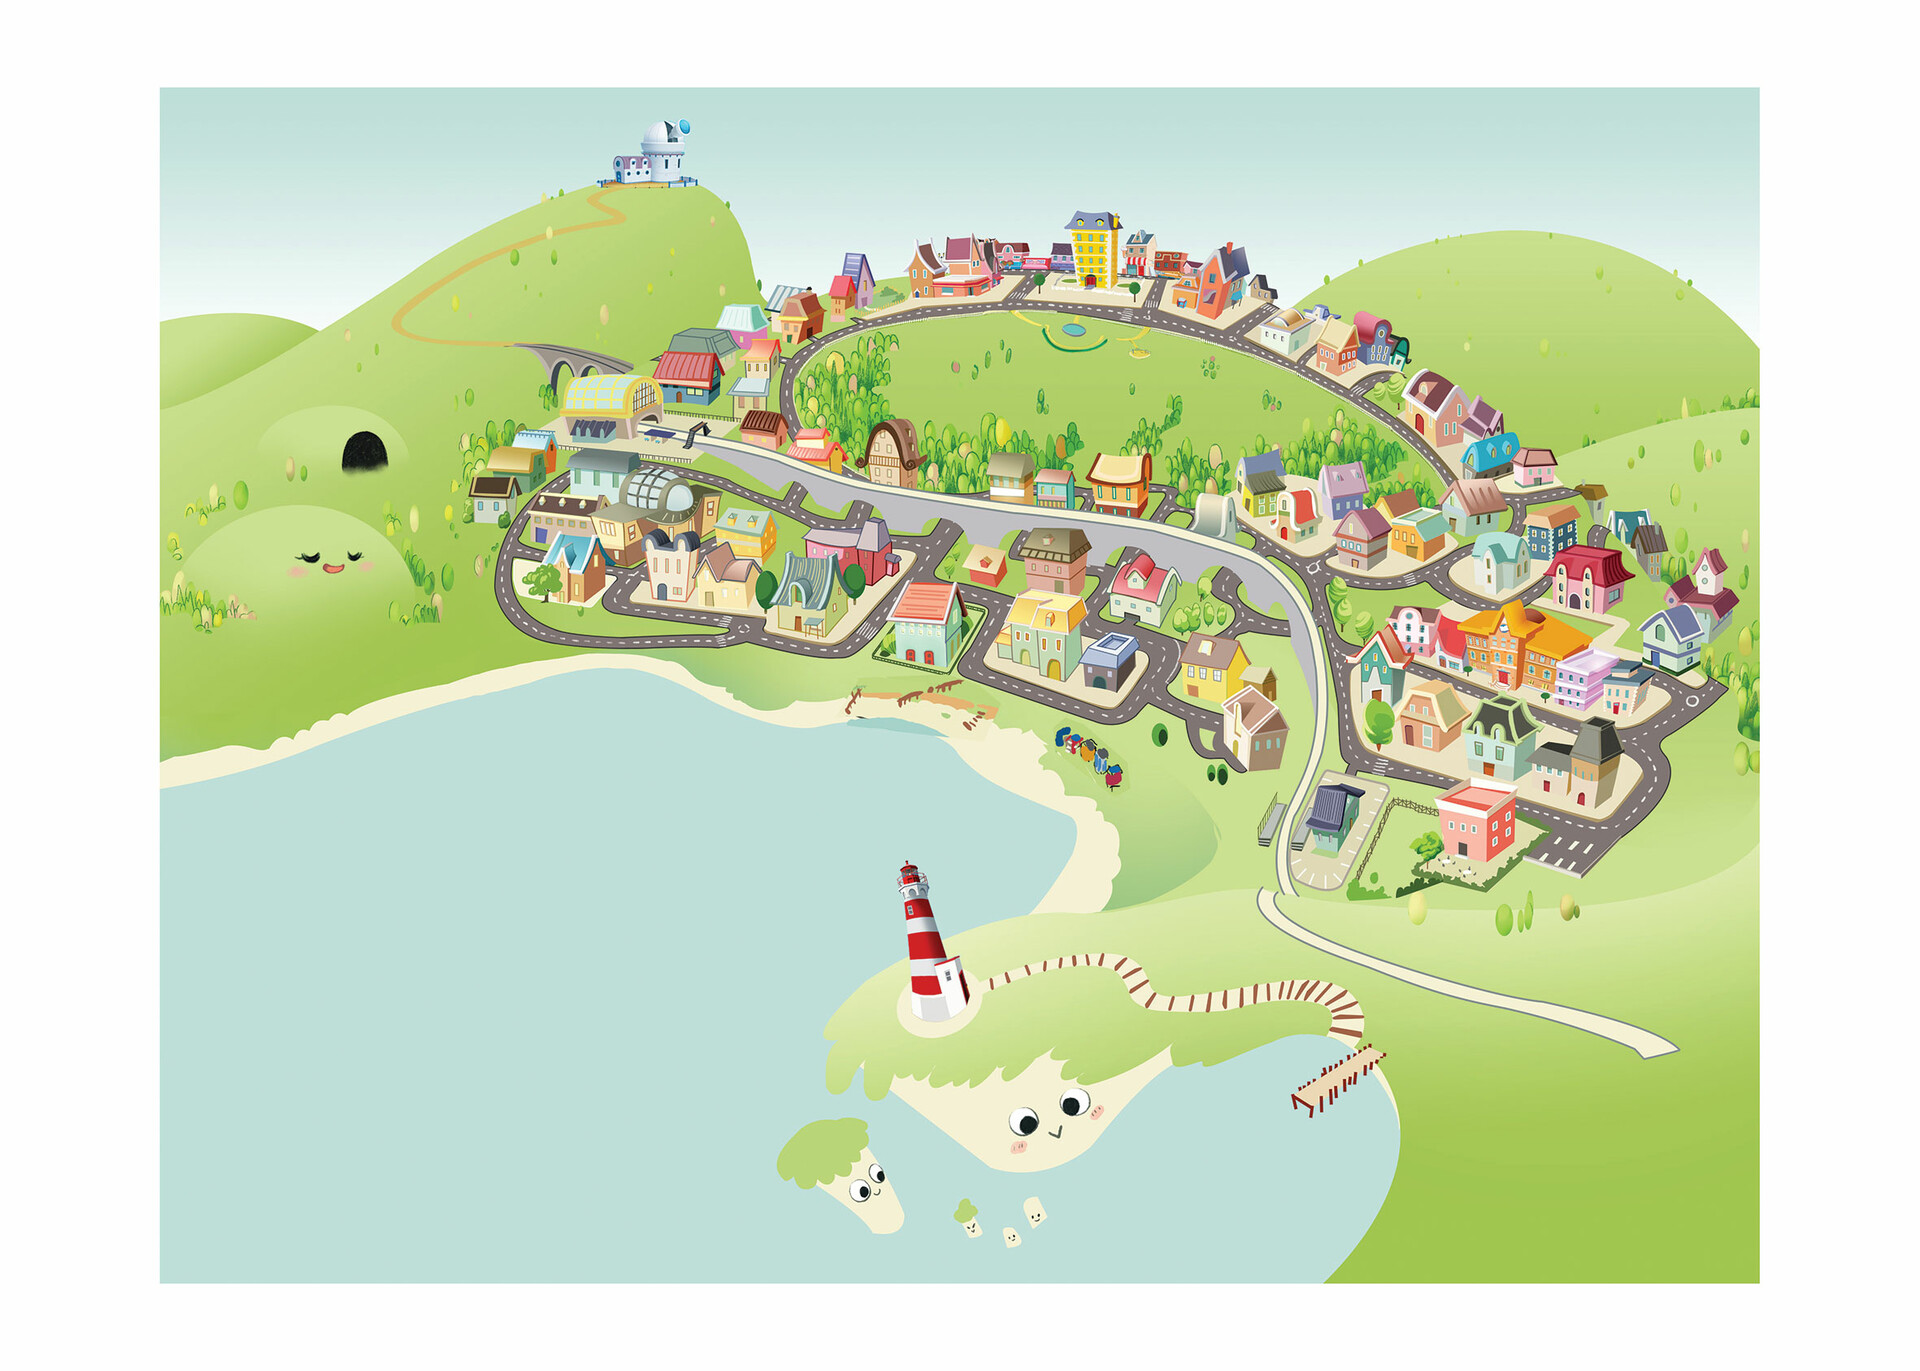 Final town in vectorial